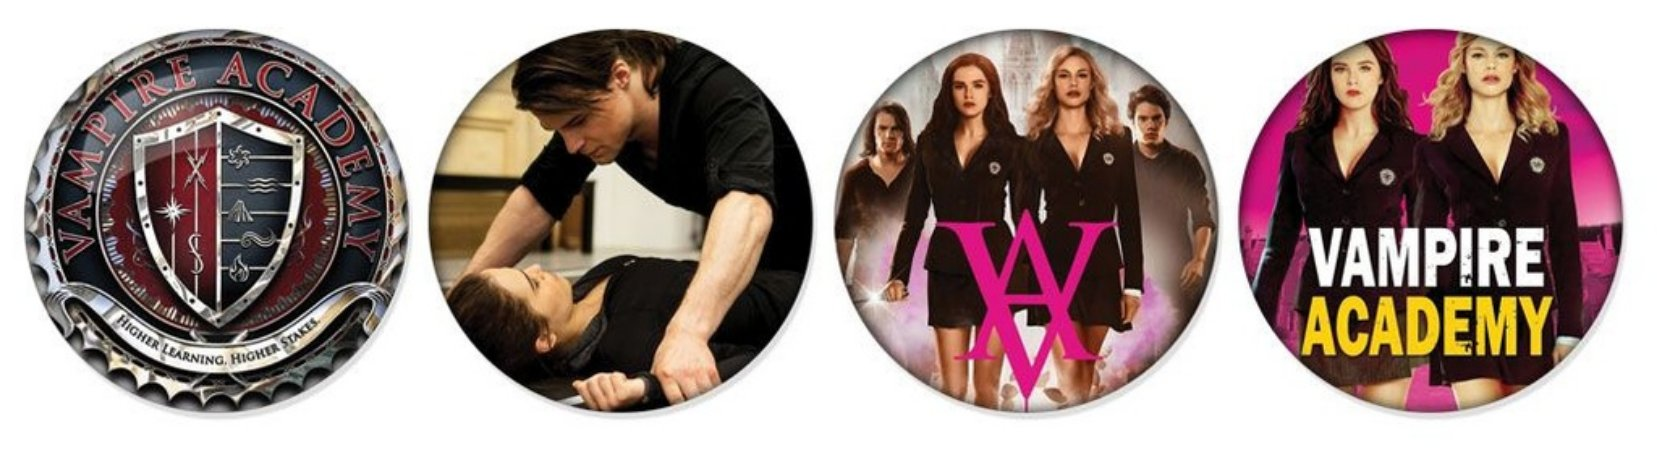 Kit Bottons - Vampire Academy